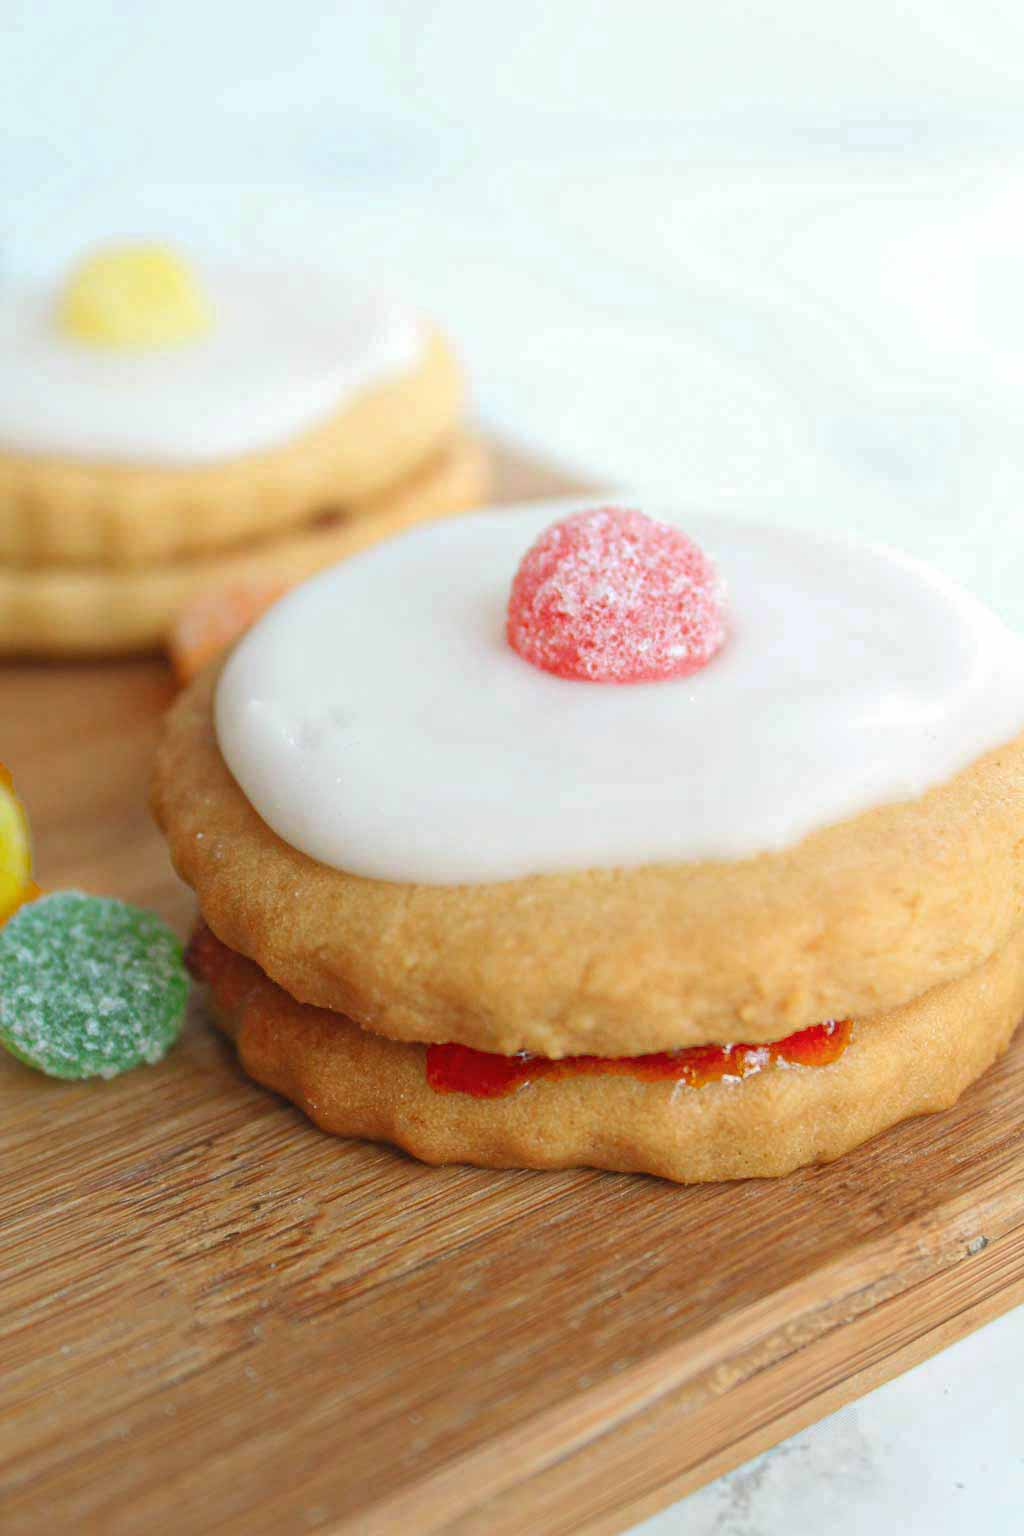 a vegan Empire biscuit with a red Jelly Tot on top